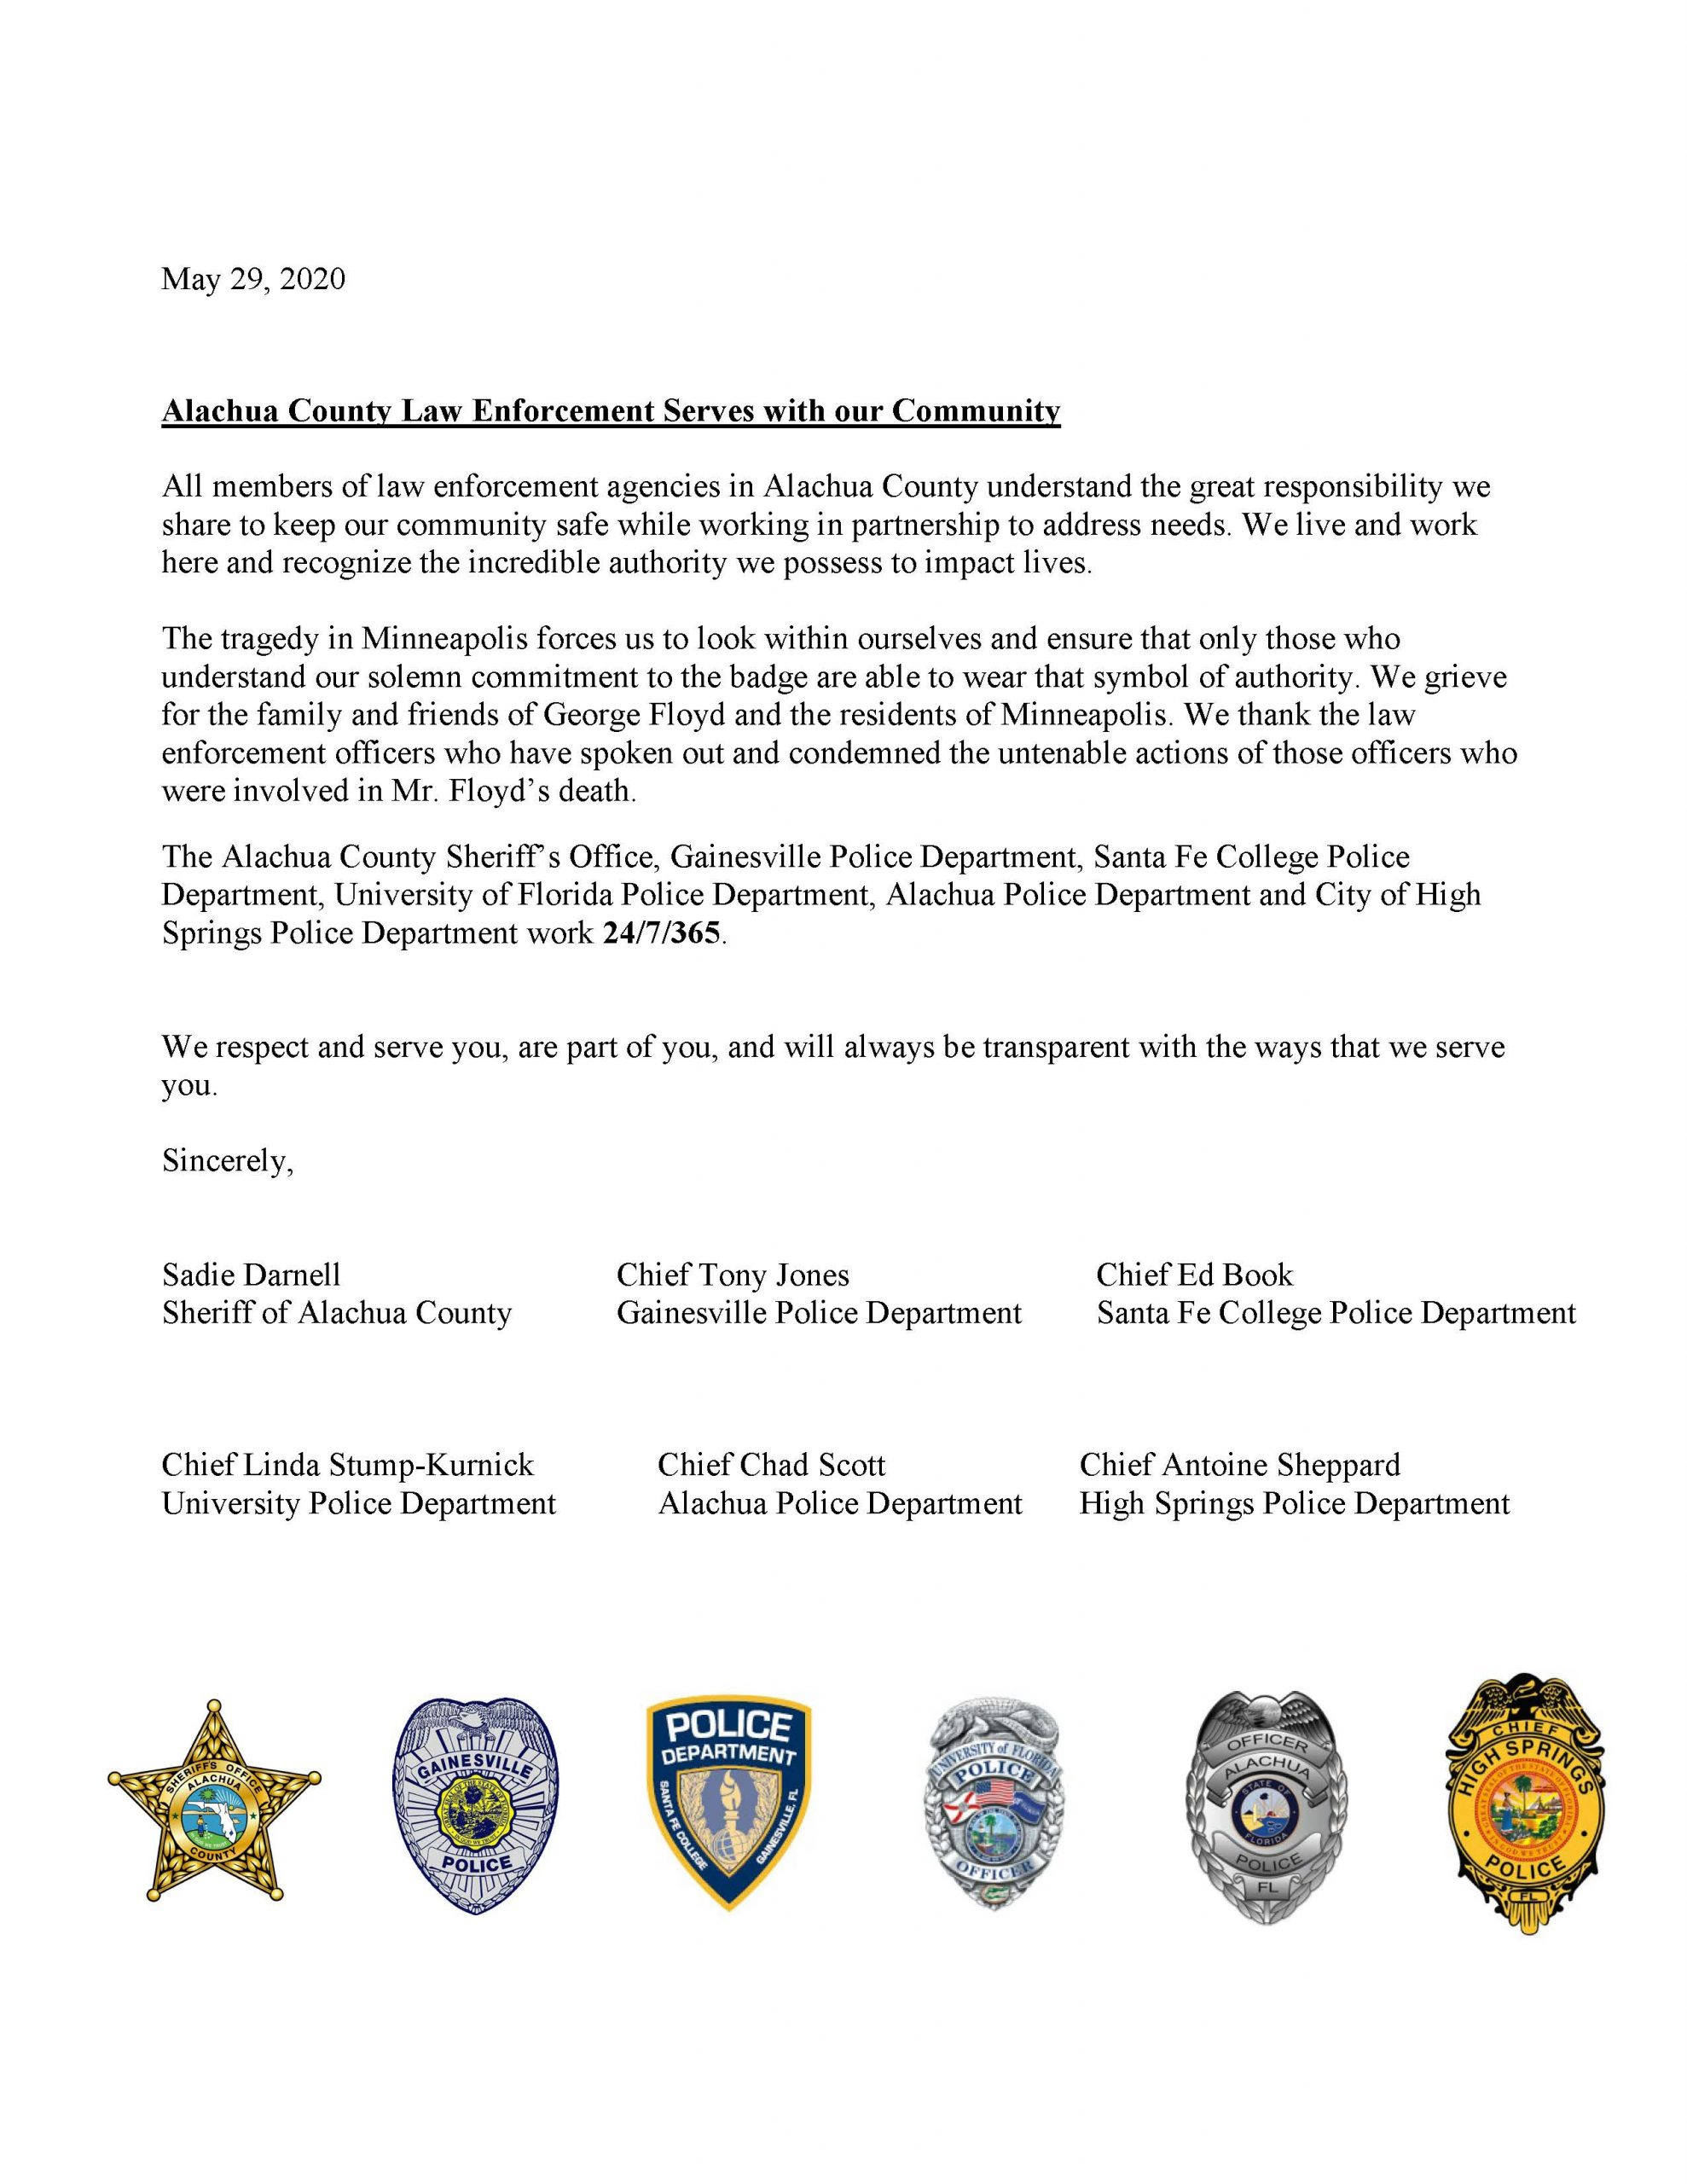 Joint Letter from Agency Police Chiefs and Sheriff for Minneapolis Minnesota Victim George Floyd May 2020